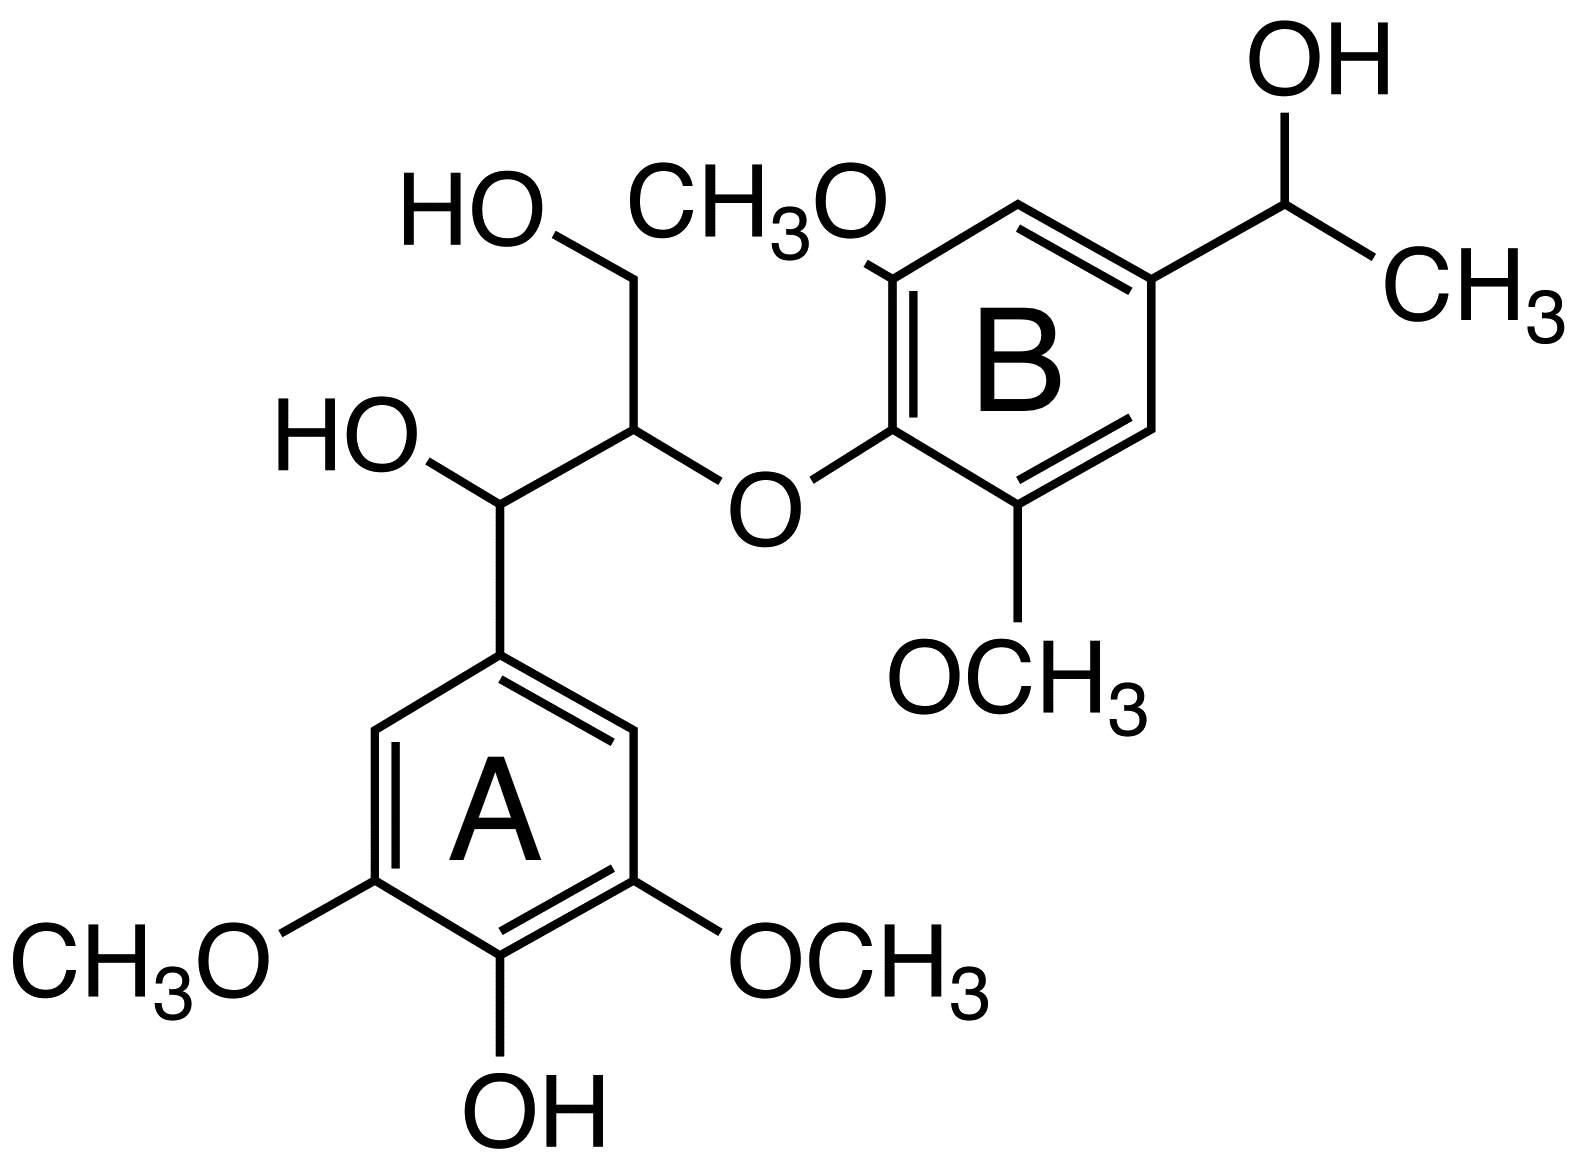 1-(4-Hydroxy-3,5-dimethoxyphenyl)-2-[4-(1-hydroxyethyl)-2,6-dimethoxyphenoxy]propane-1,3-diol image